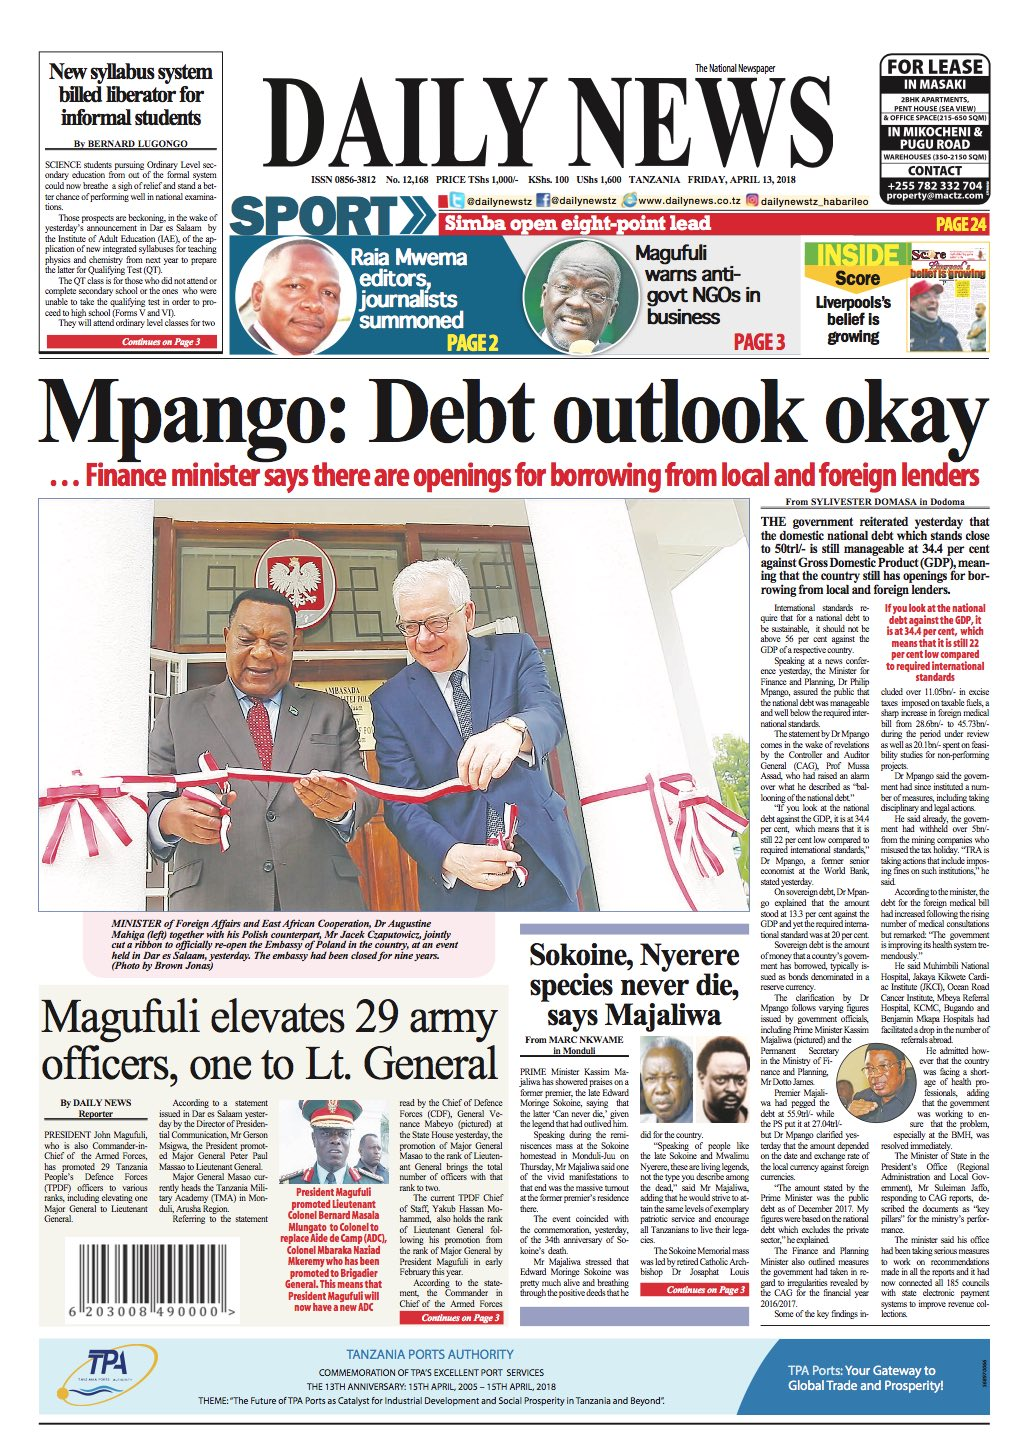 MPANGO  DEBT OUTLOOK OKAY